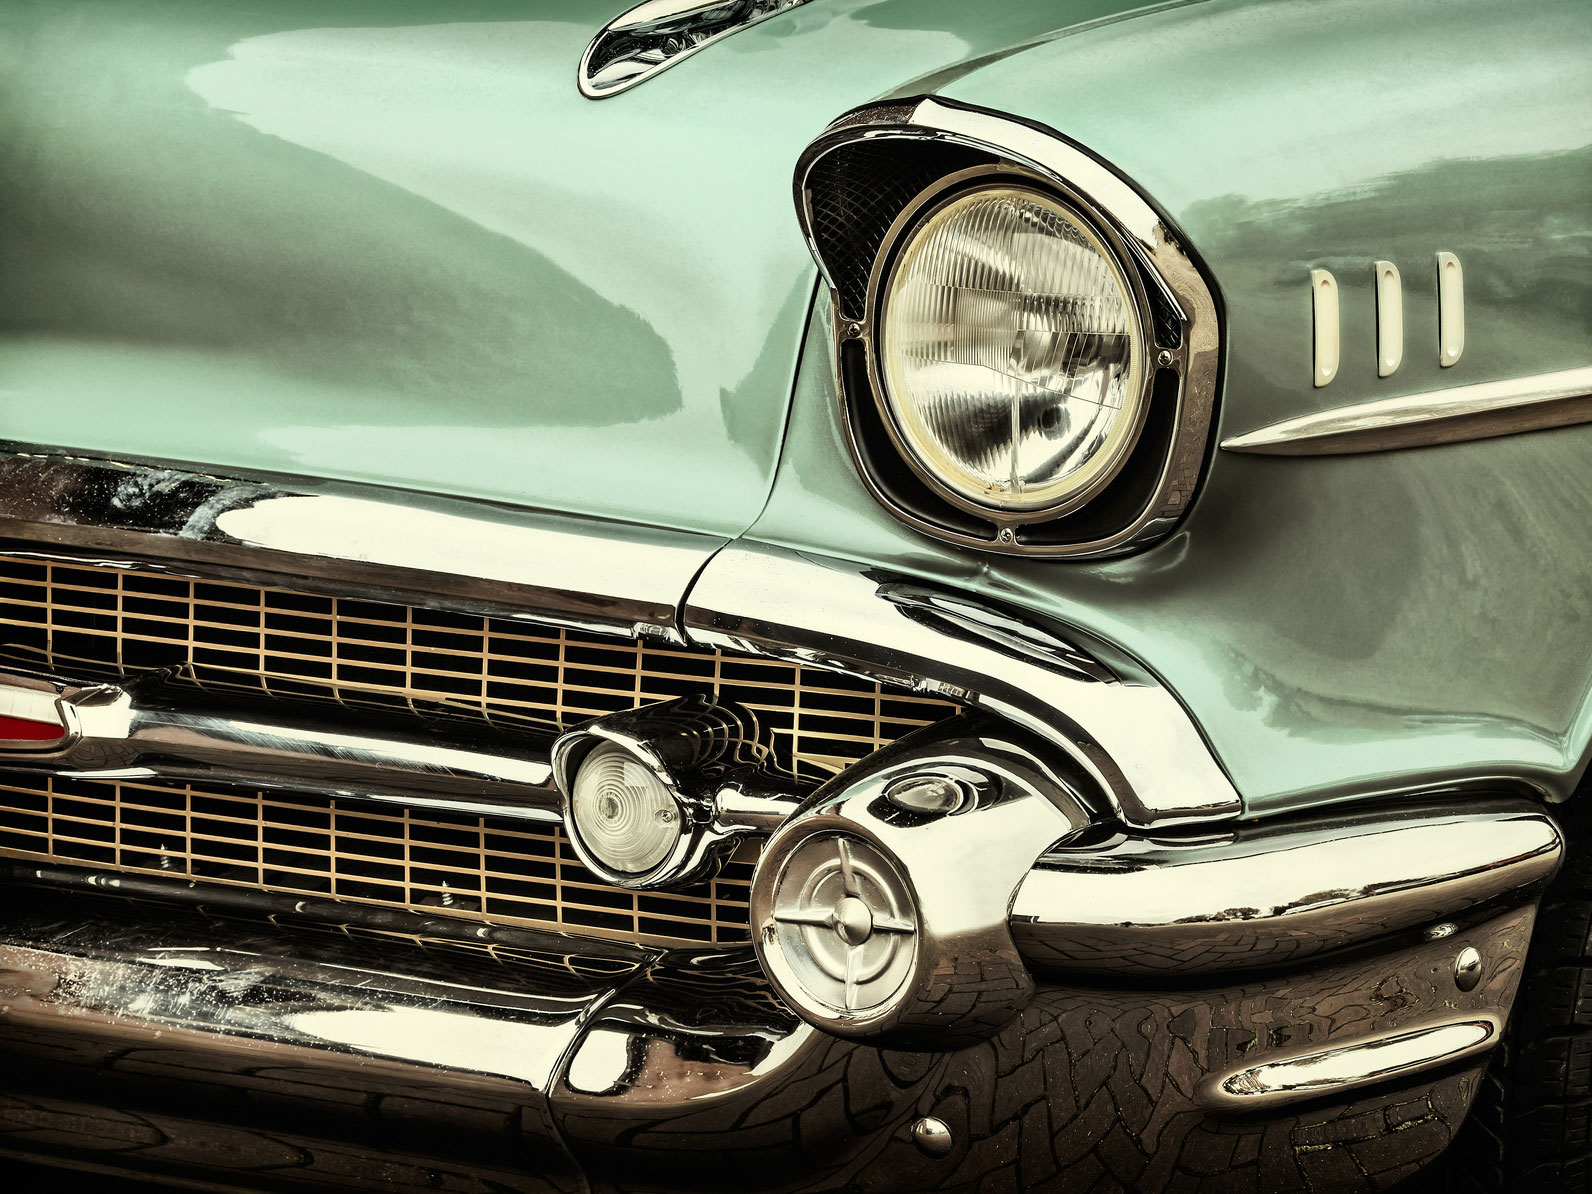 Maintaining your antique car Orland park IL